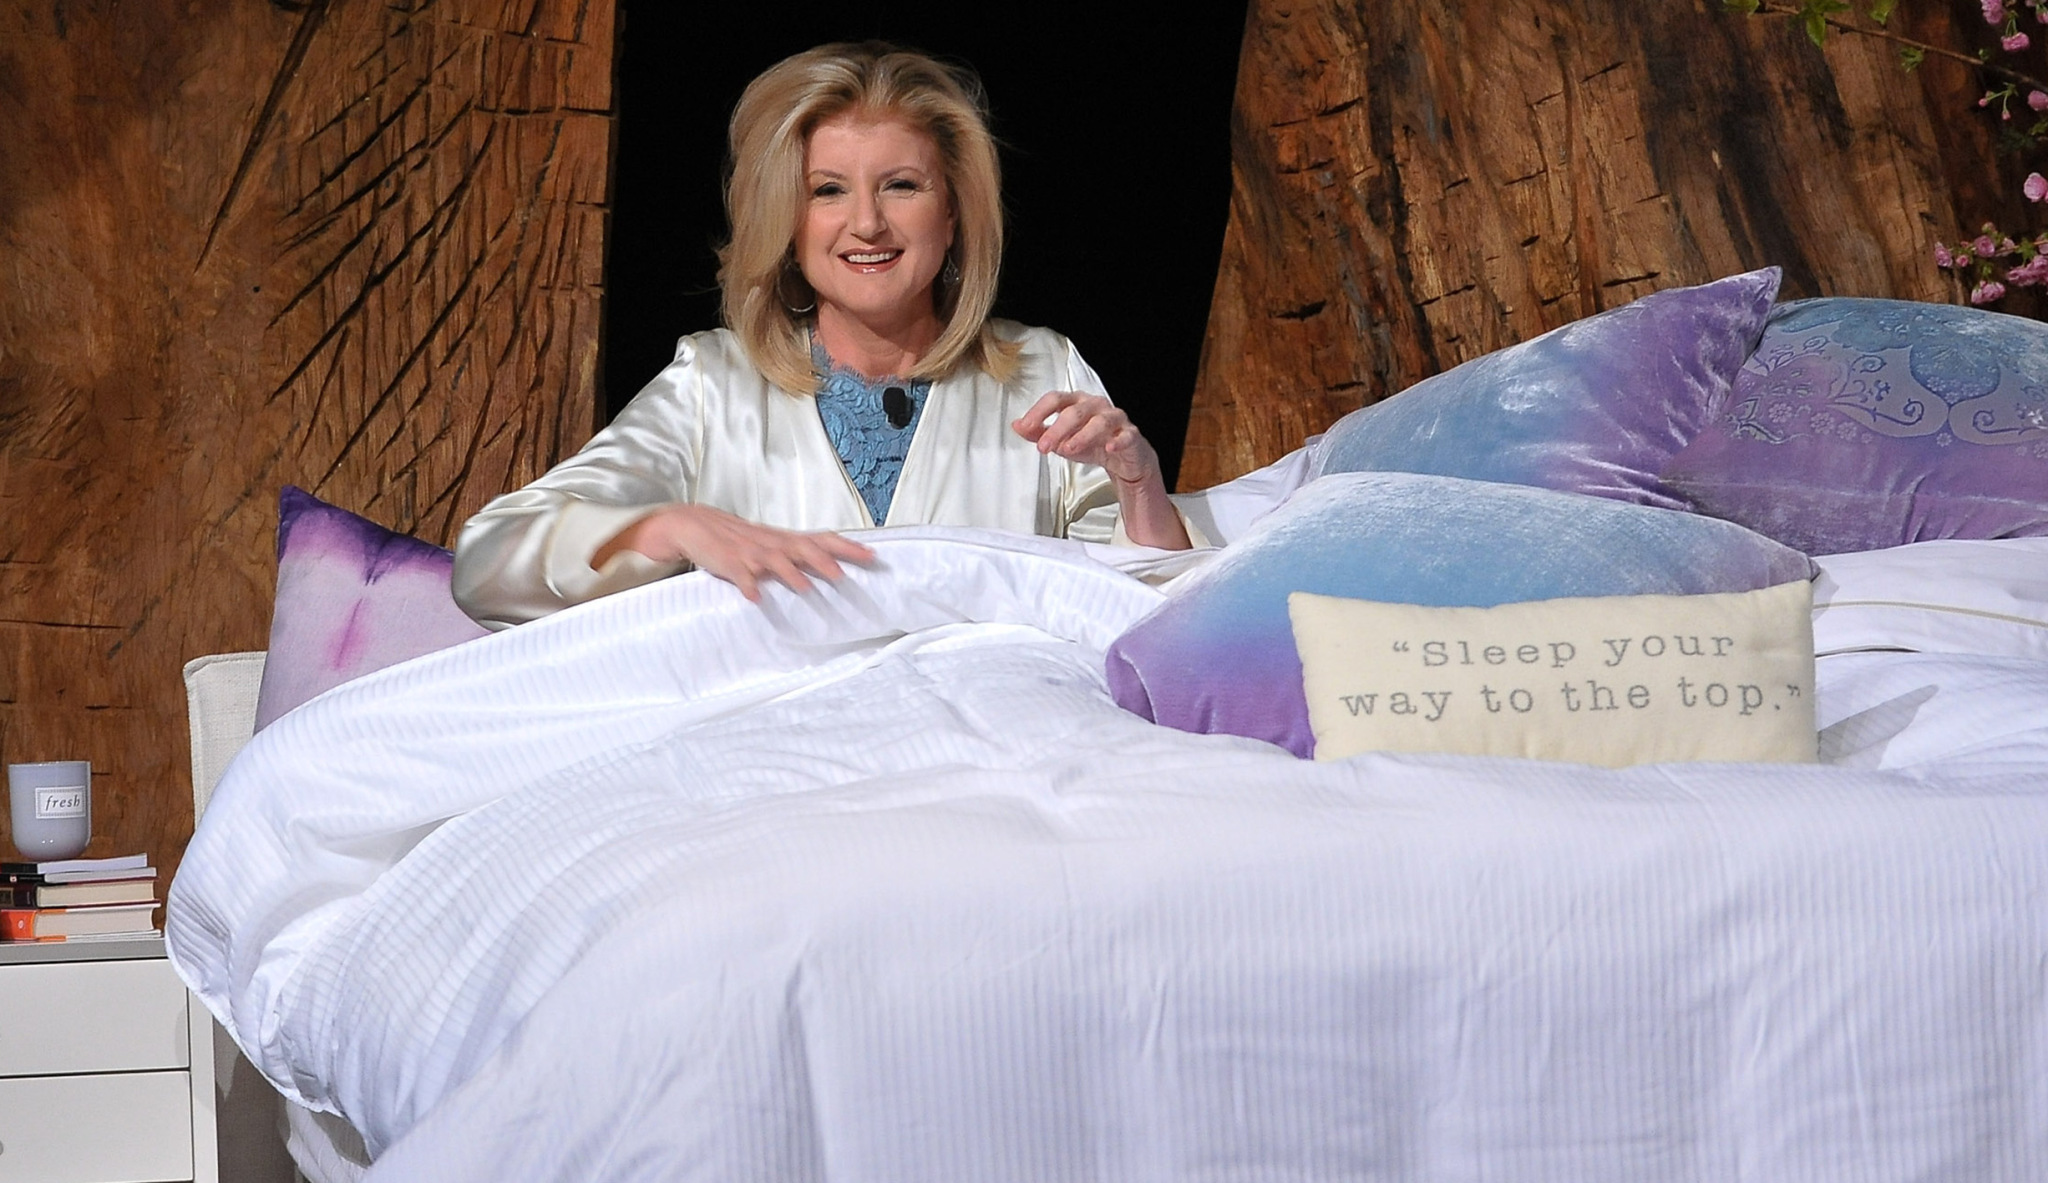 Arianna Huffington presents a THRIVE talk in 2014 from a prop bed.